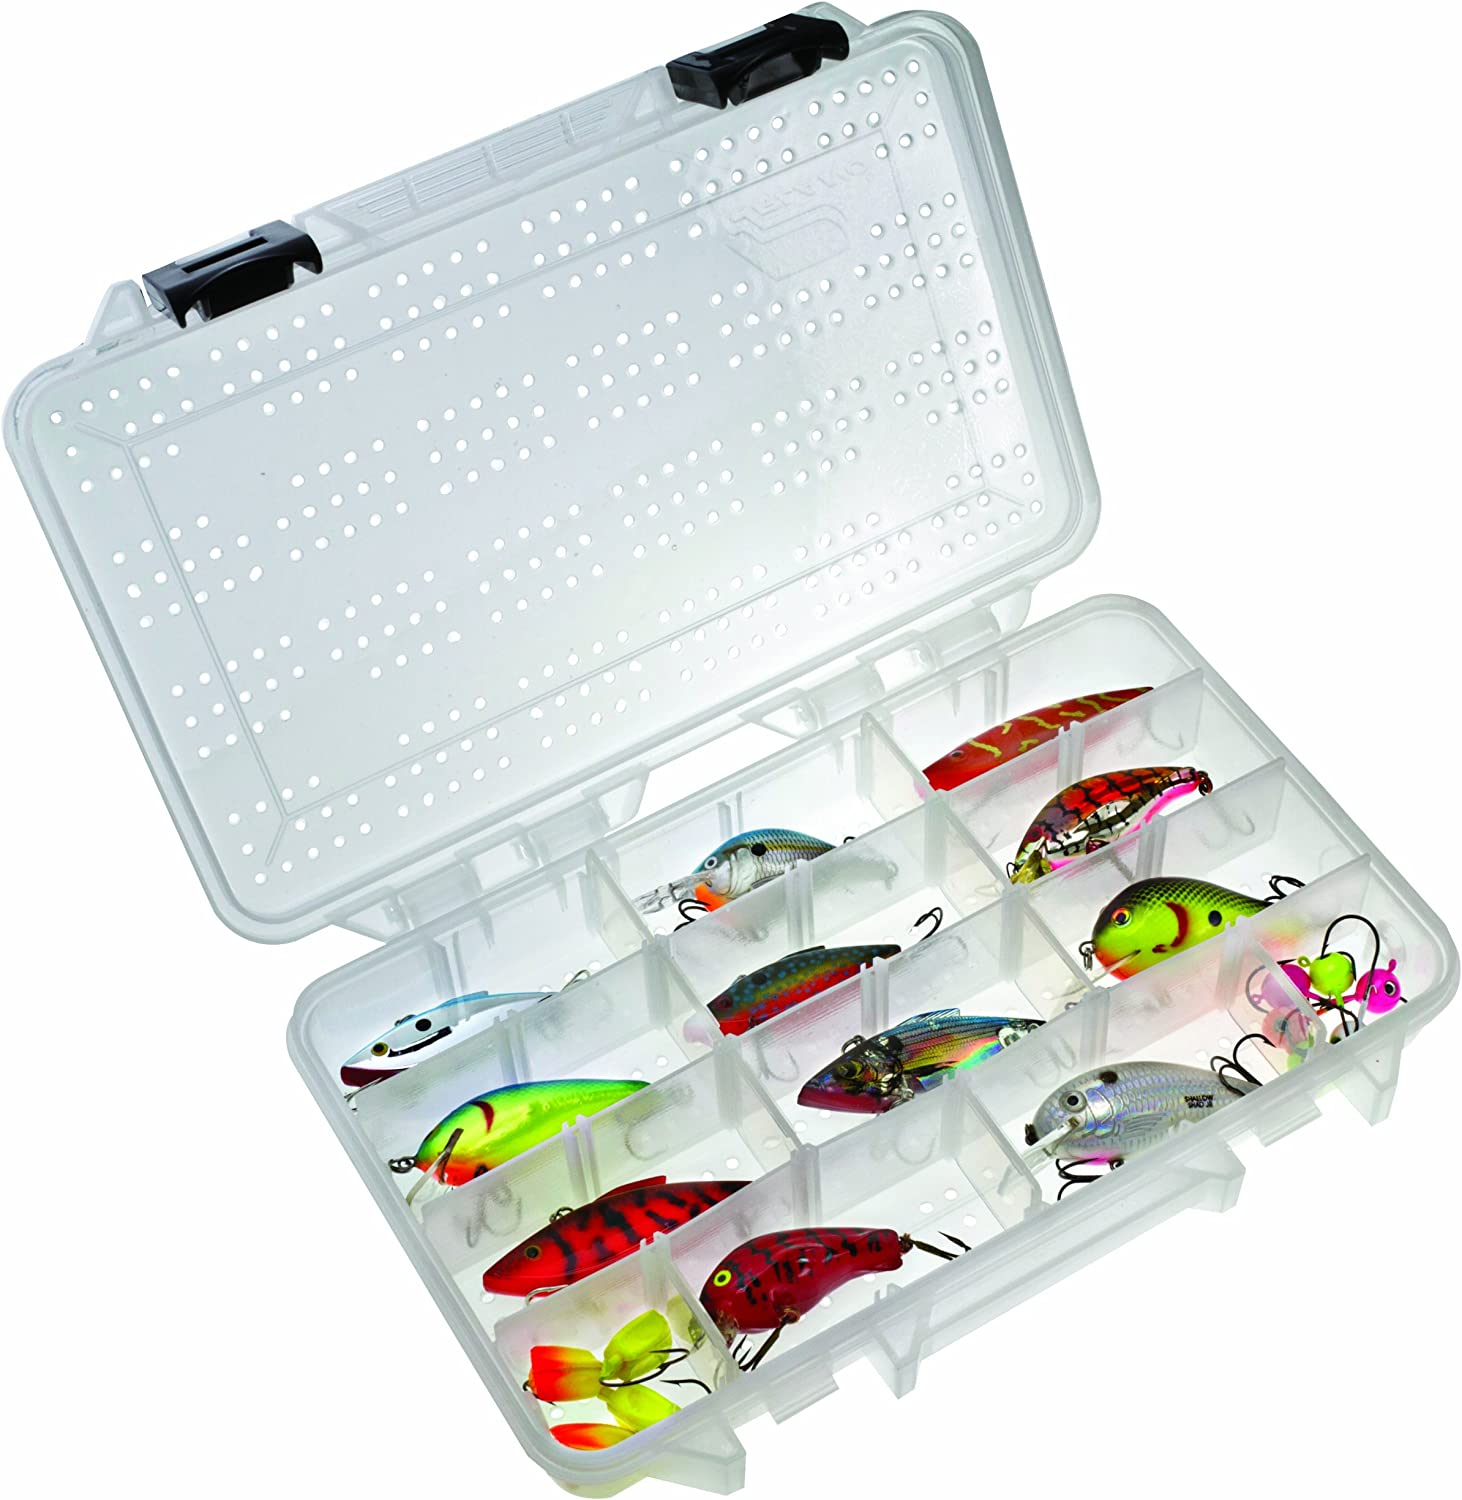 Plano 43620-0 Hydro Flo Box 3620 Size : Fishing Tackle Boxes : Sports & Outdoors